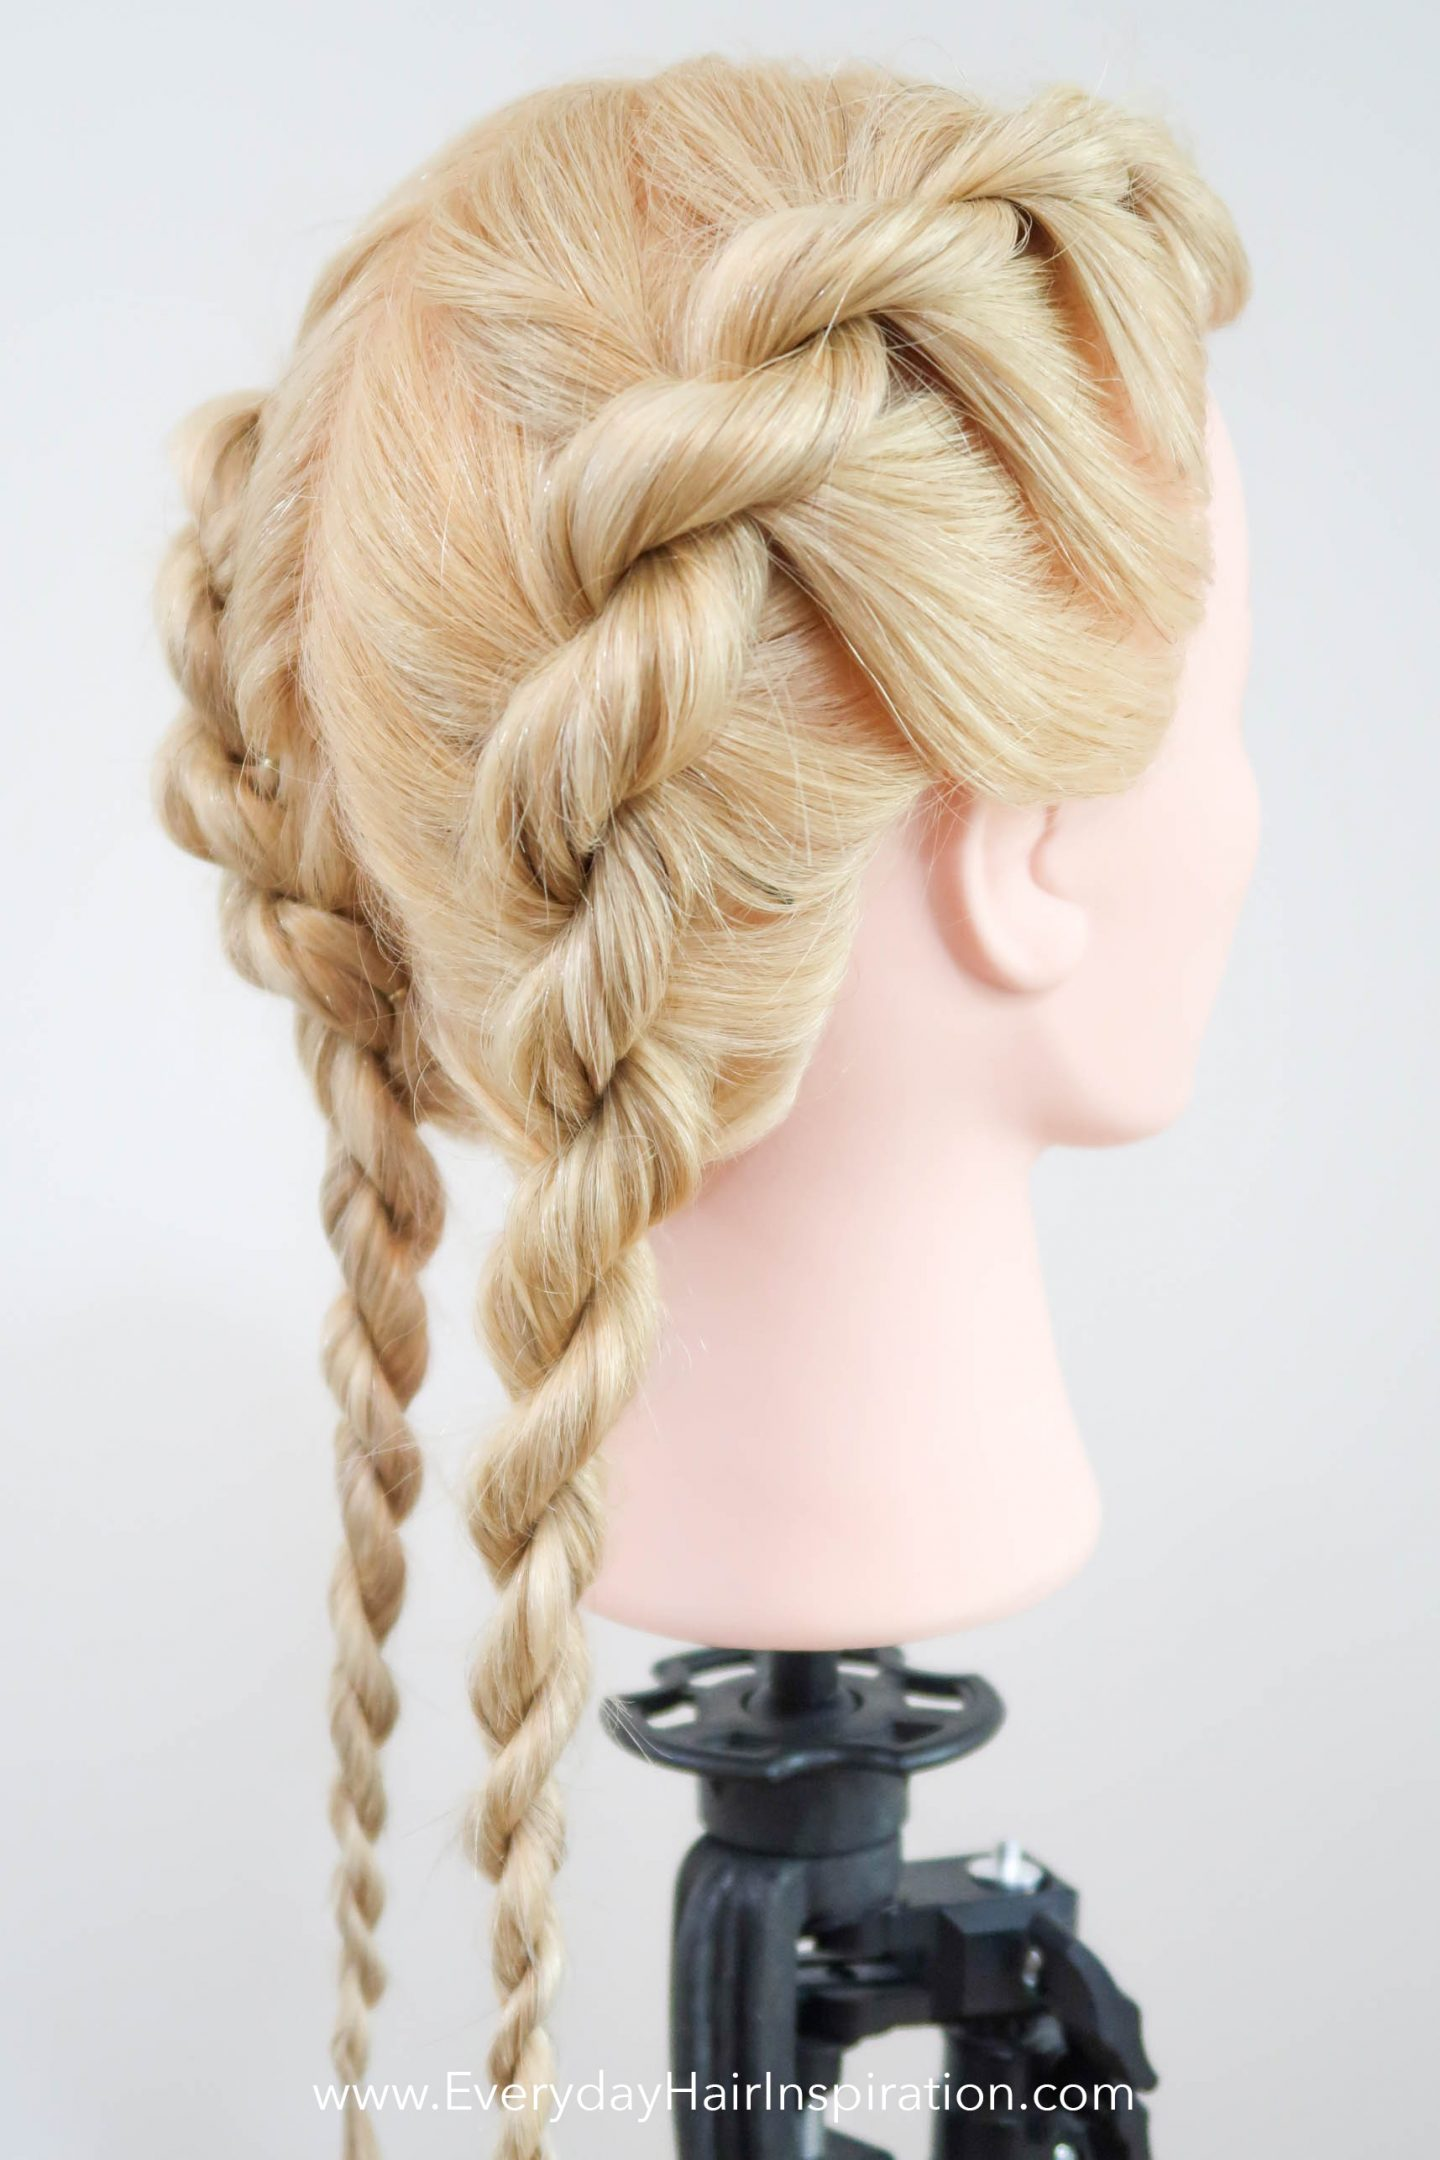 French Rope Braid Step By Step